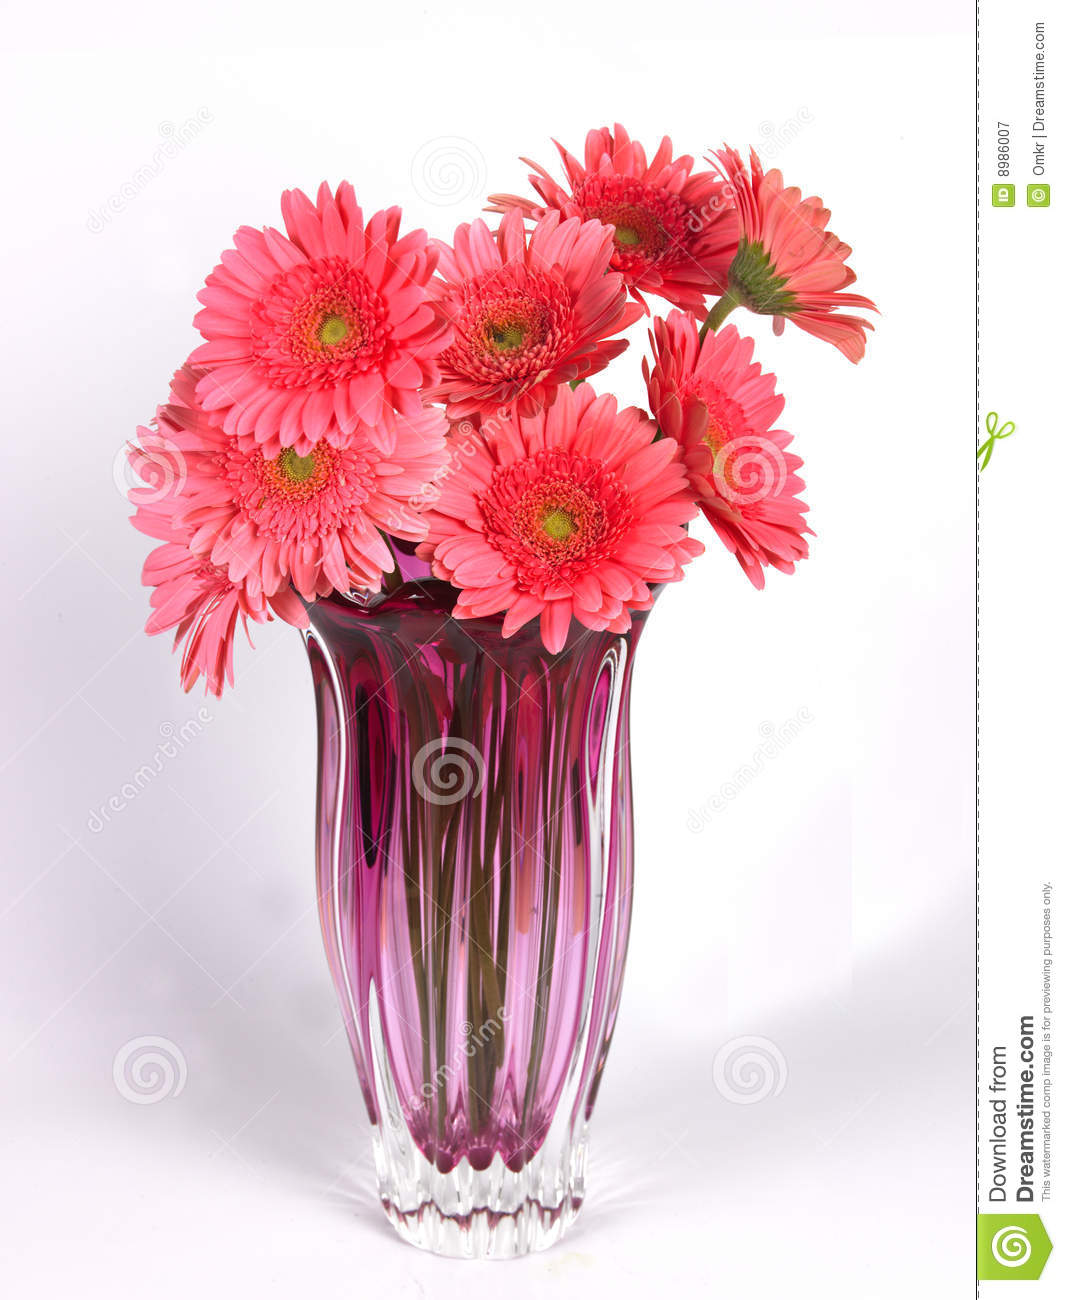 A flower vase with pink daisy flowers stock image image of pretty a flower vase with pink daisy flowers mightylinksfo